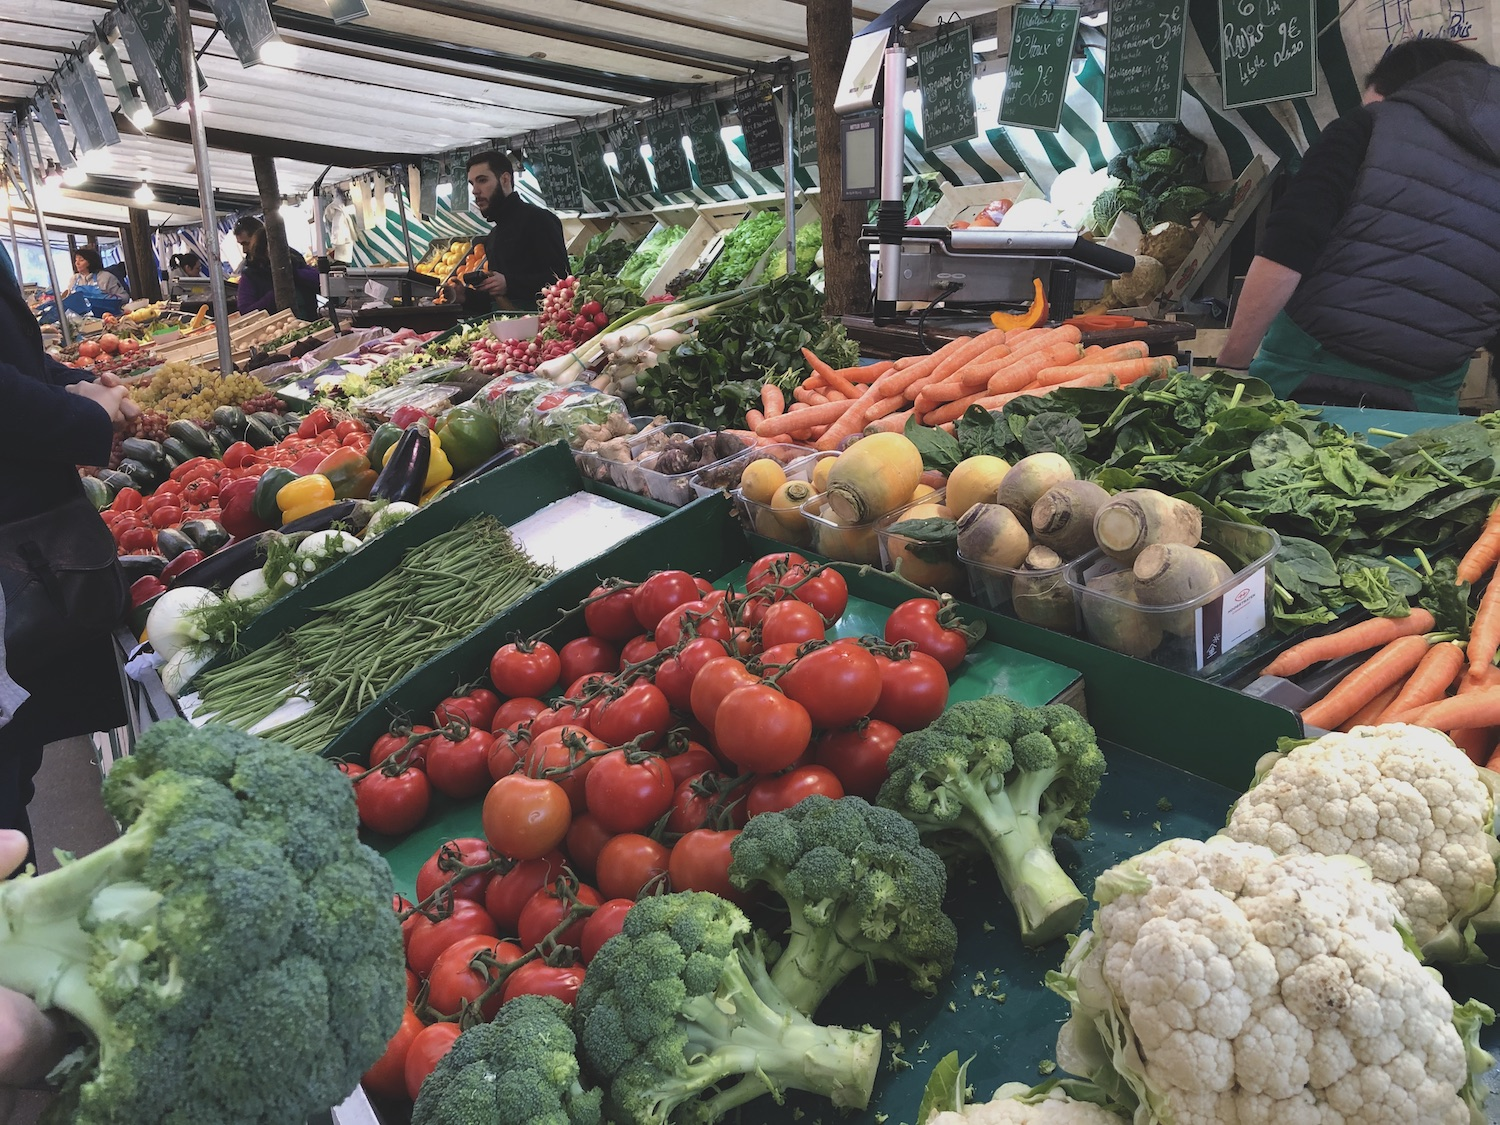 Tomatoes, broccoli, green beans, vegatables at a French market